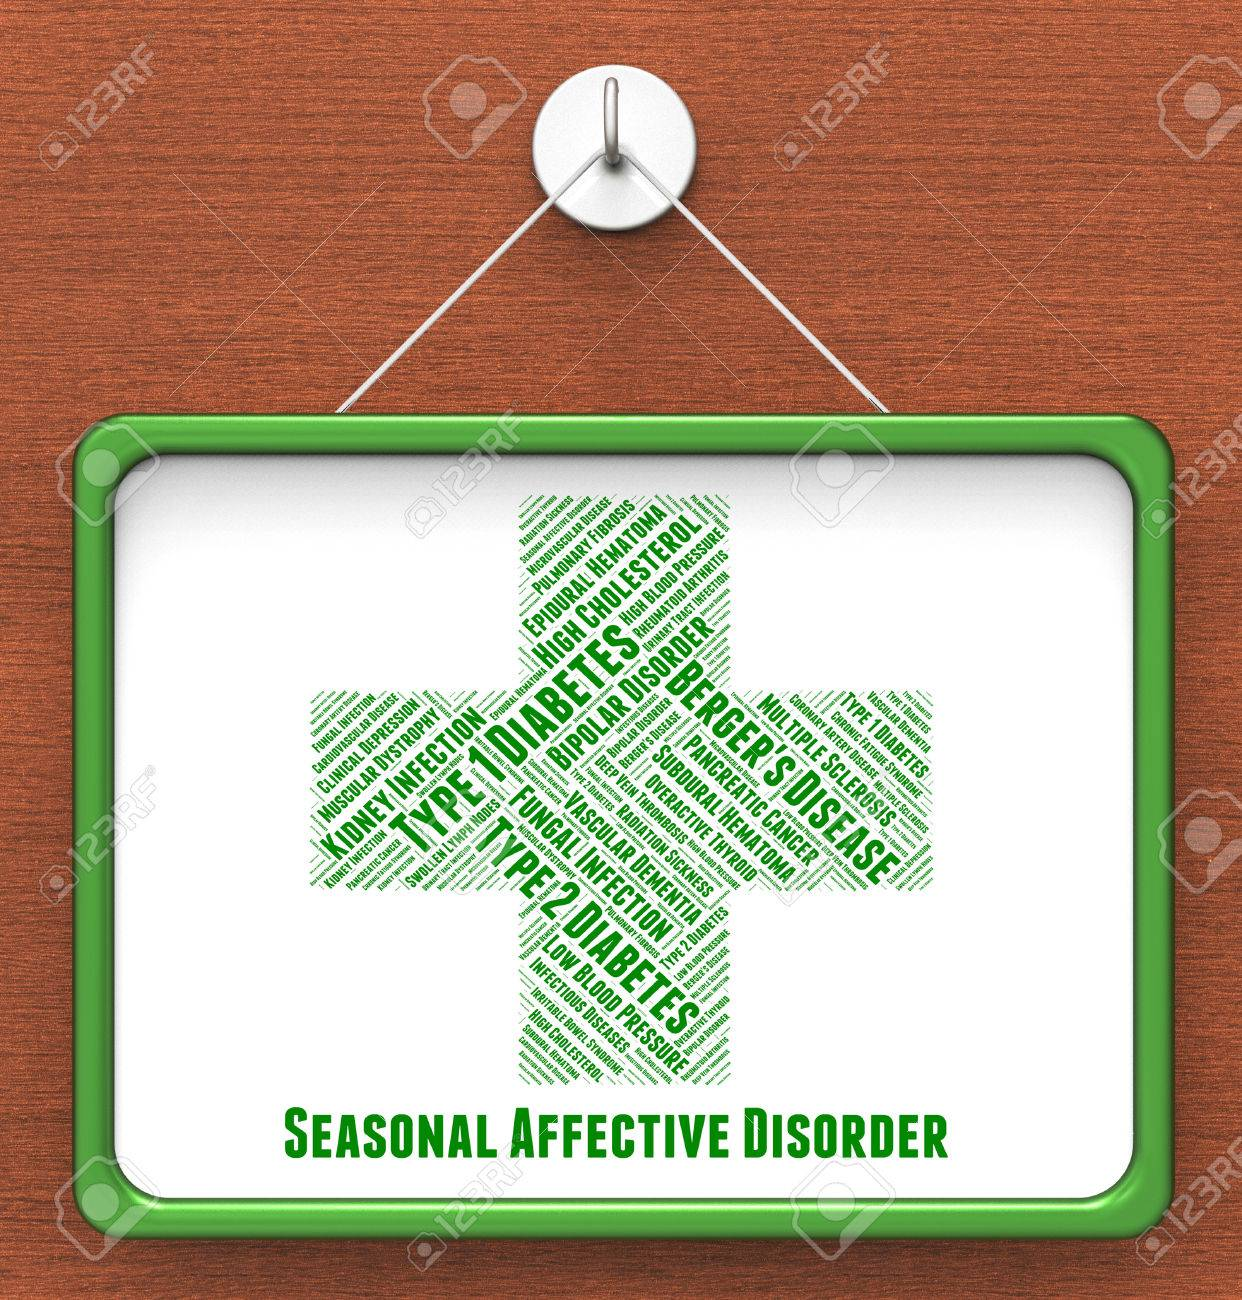 seasonal affective disorder meaning ill health and sadness stock